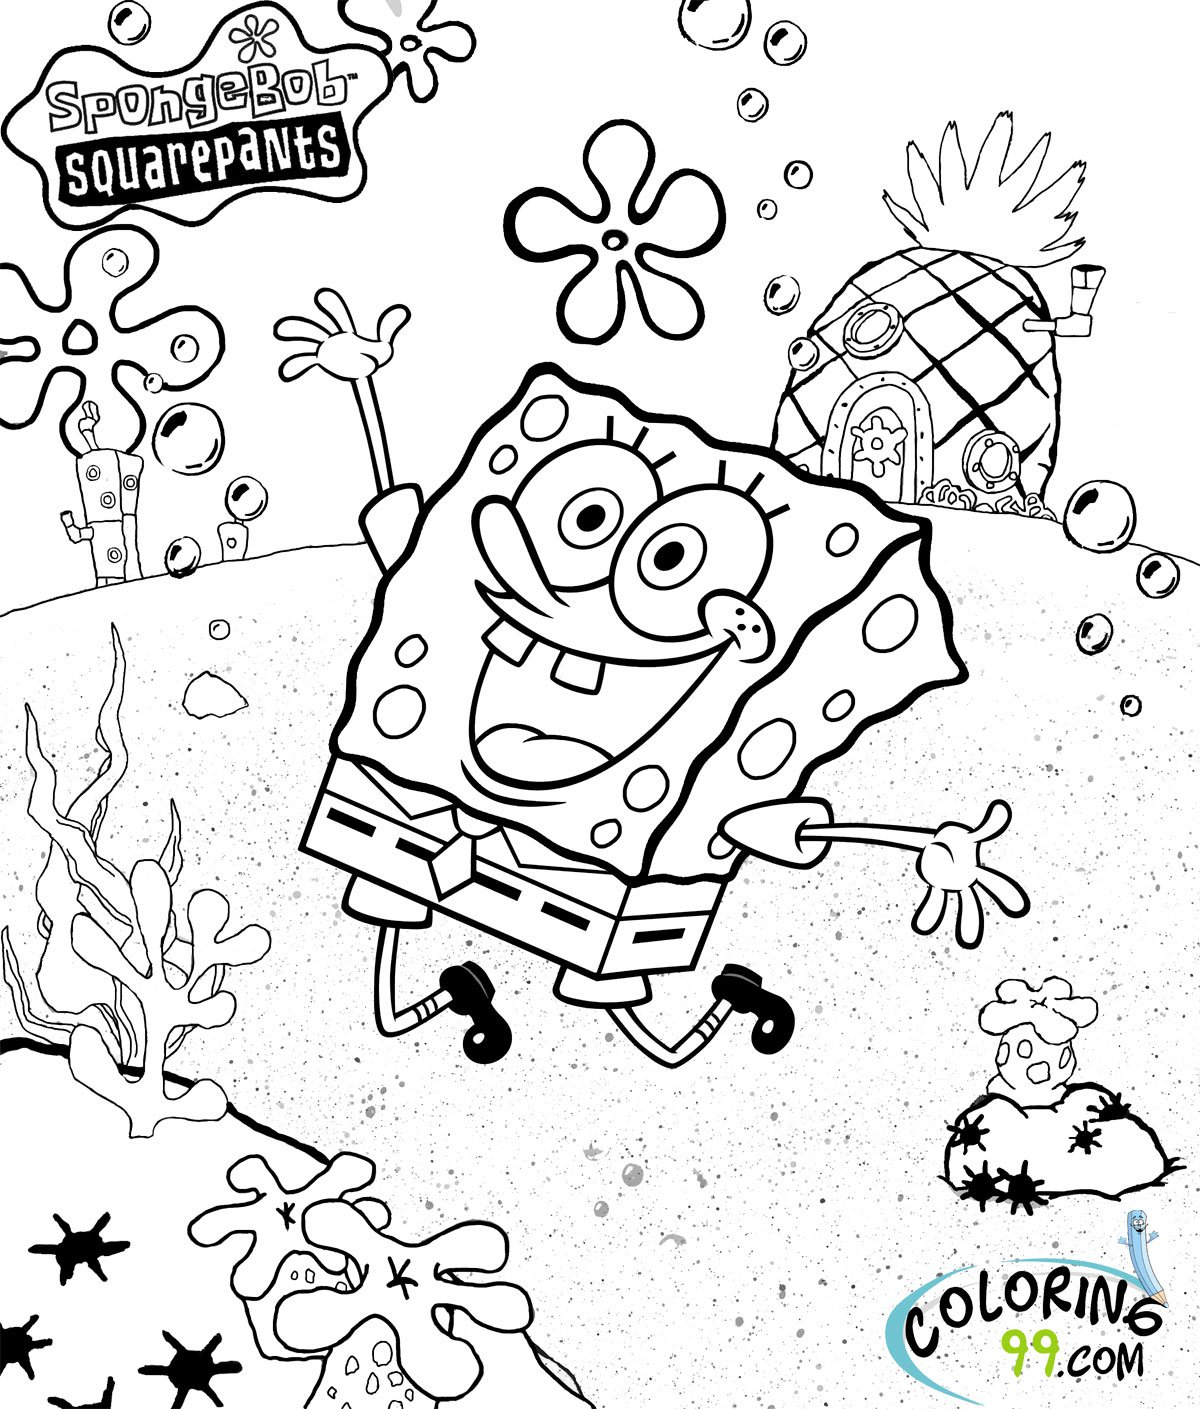 Beautiful Spongebob Squarepants Coloring Page 28 About Remodel